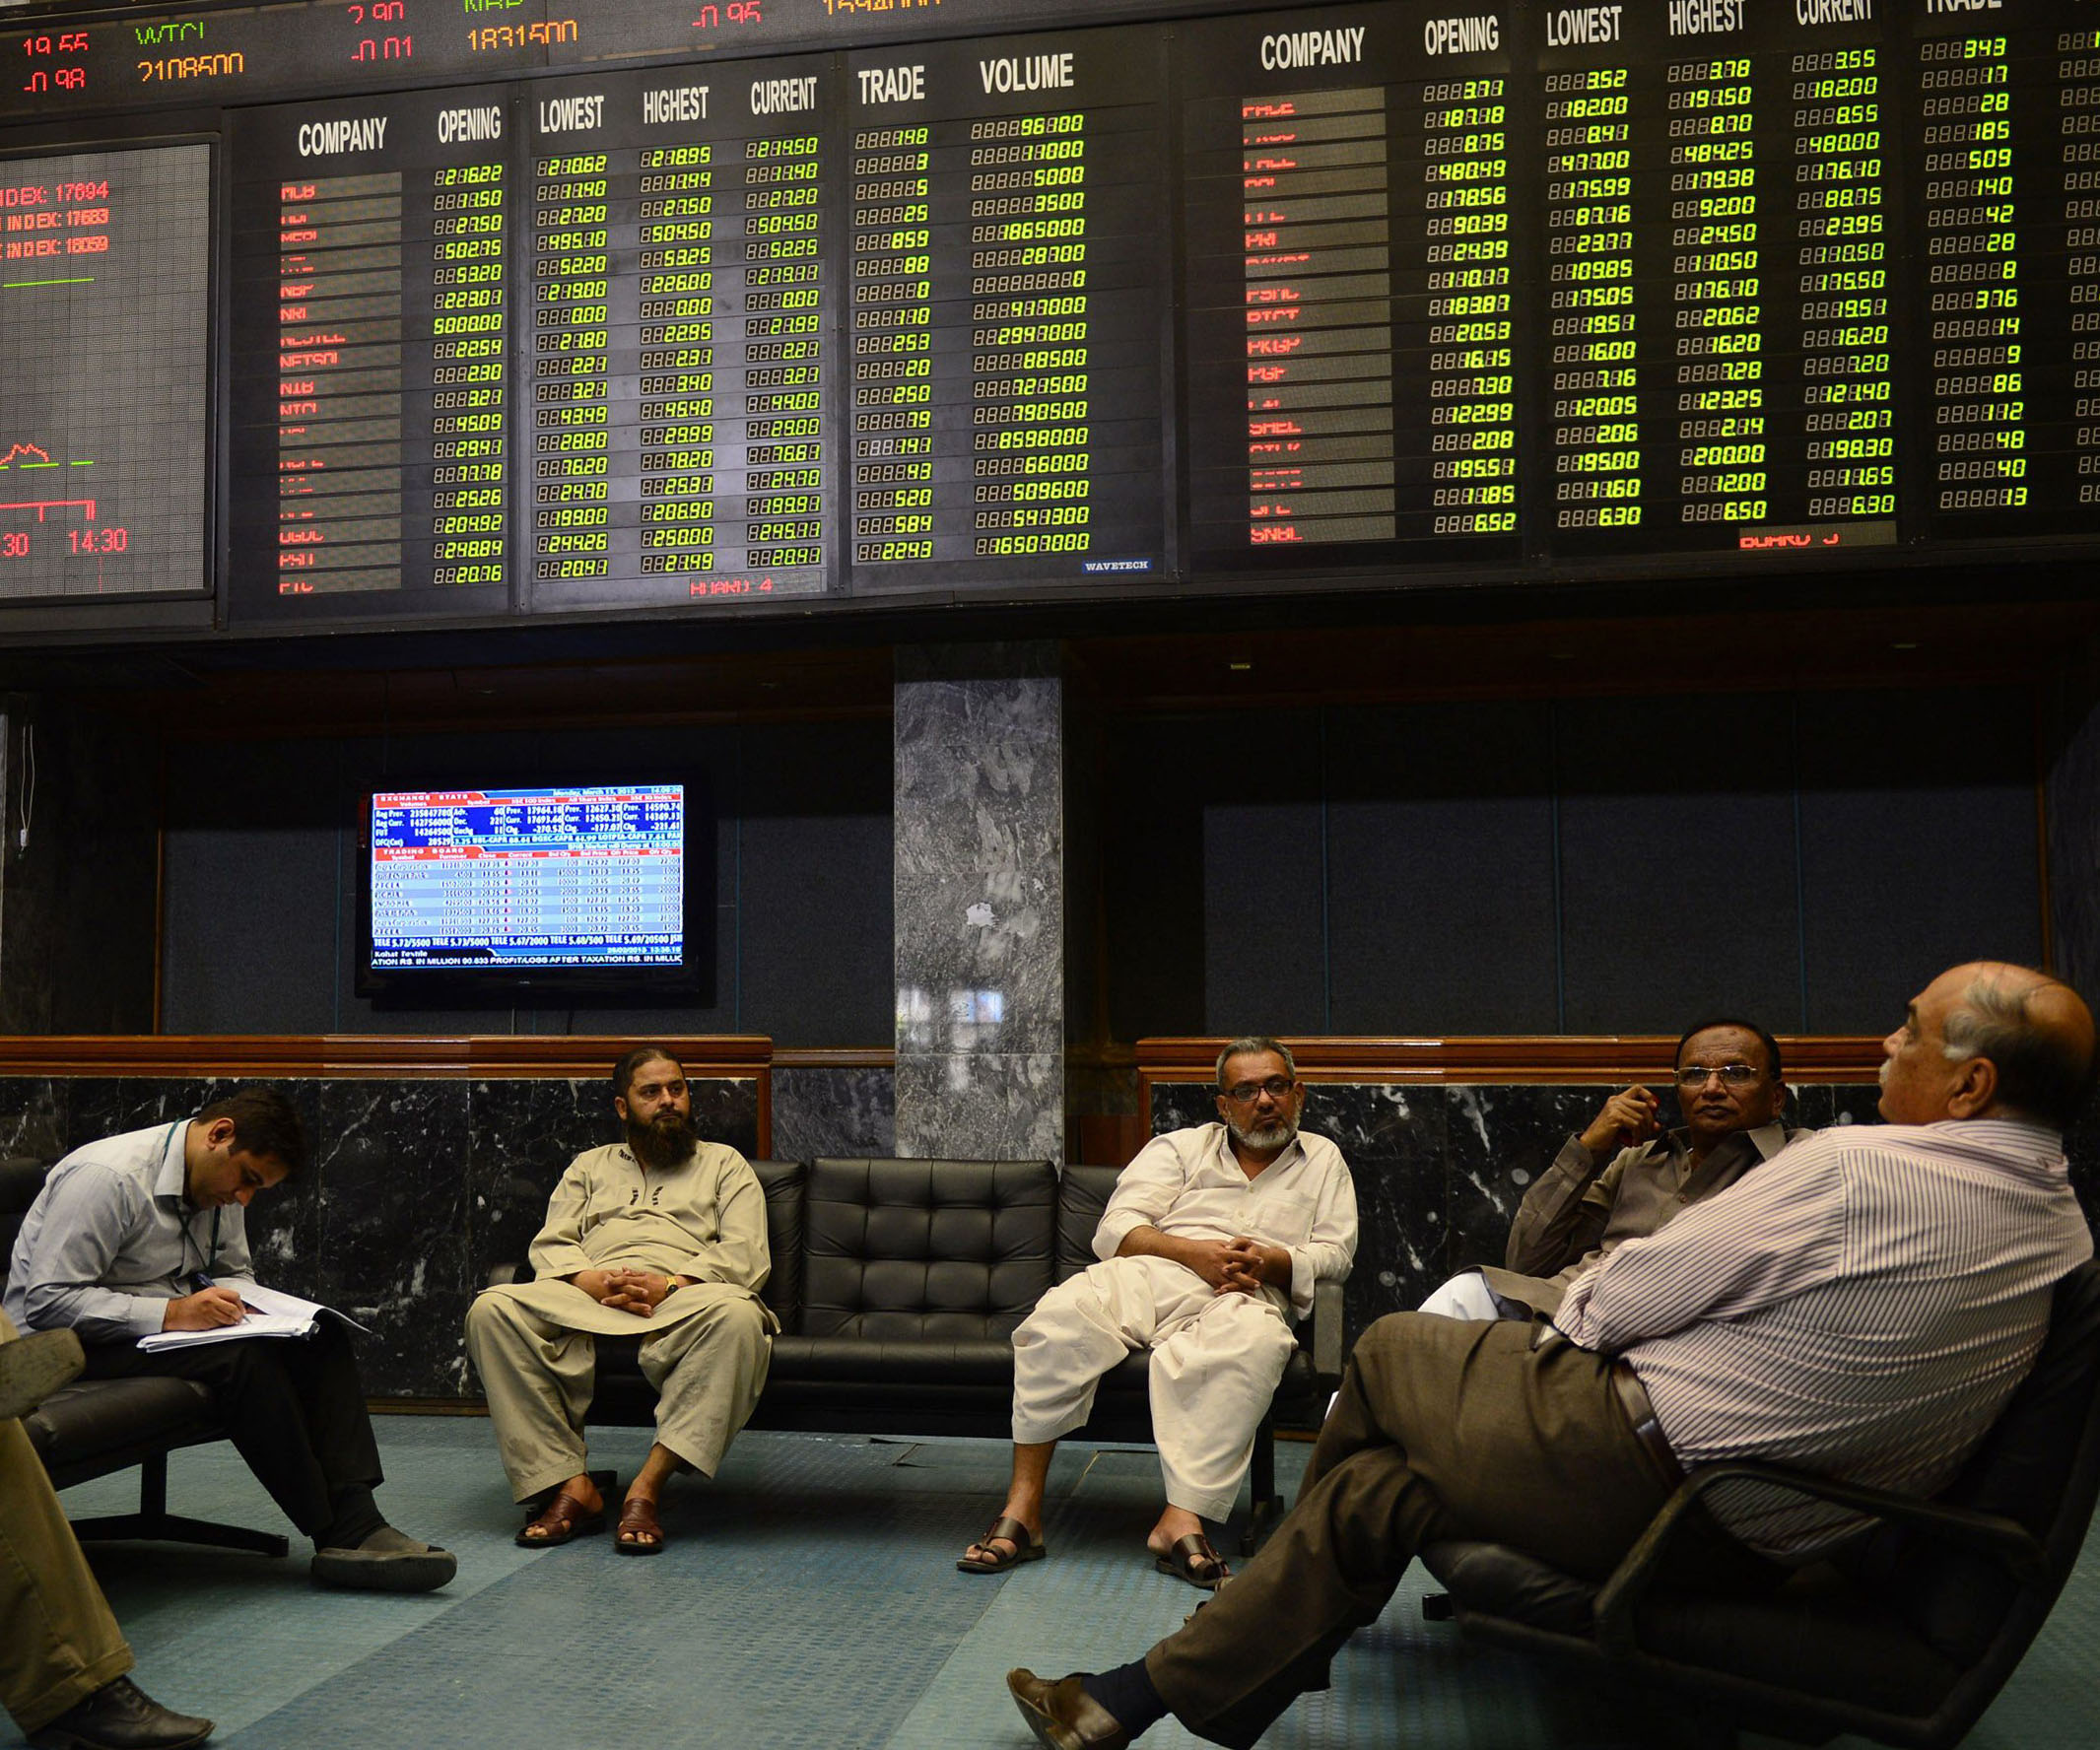 stock-market-kse-100-index-photo-afp-2-2-2-3-2-4-2-2-3-4-2-3-2-2-2-2-2-3-2-3-4